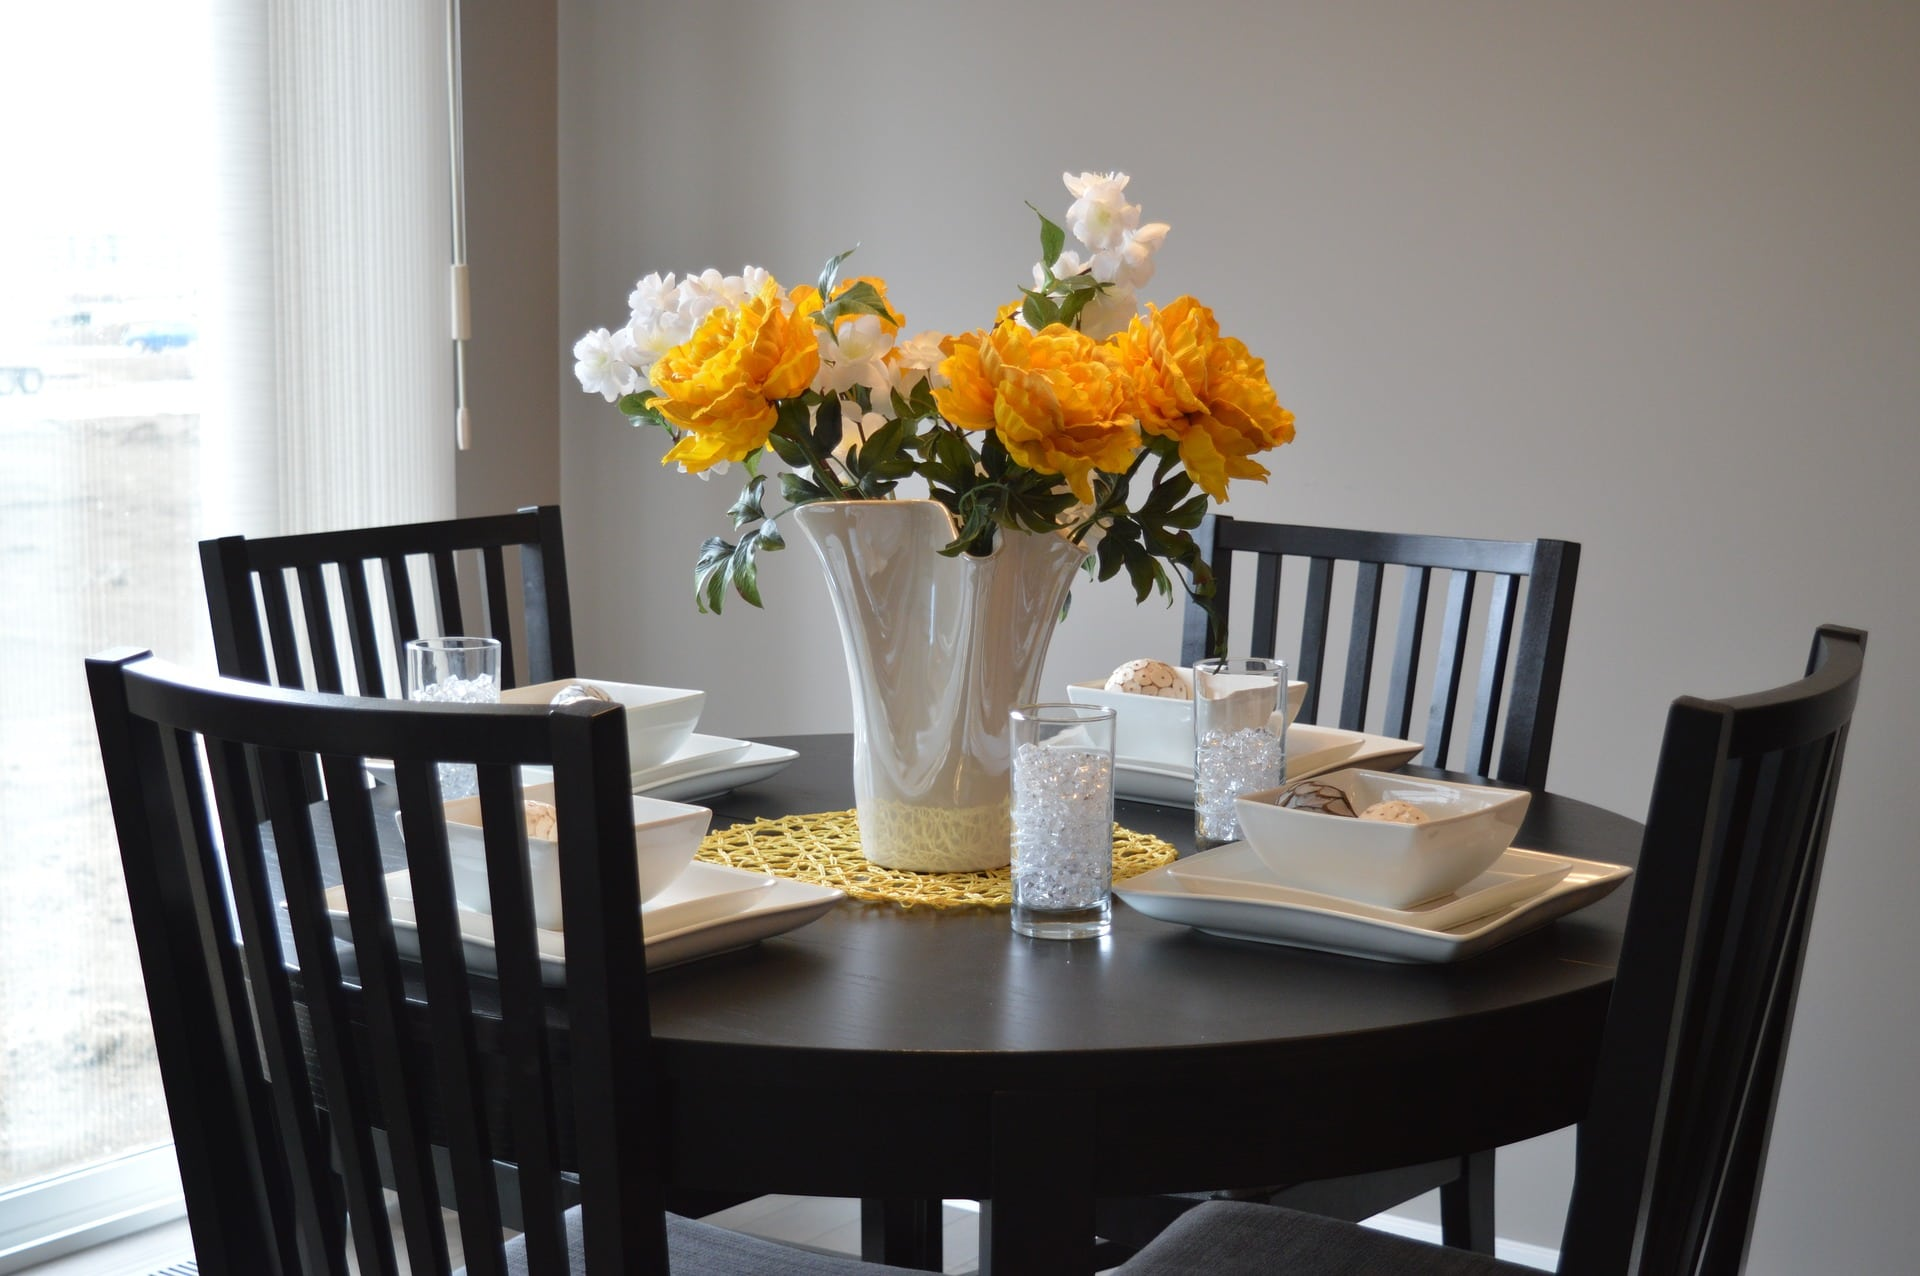 ound Table Tips to Style a Small Dining Space